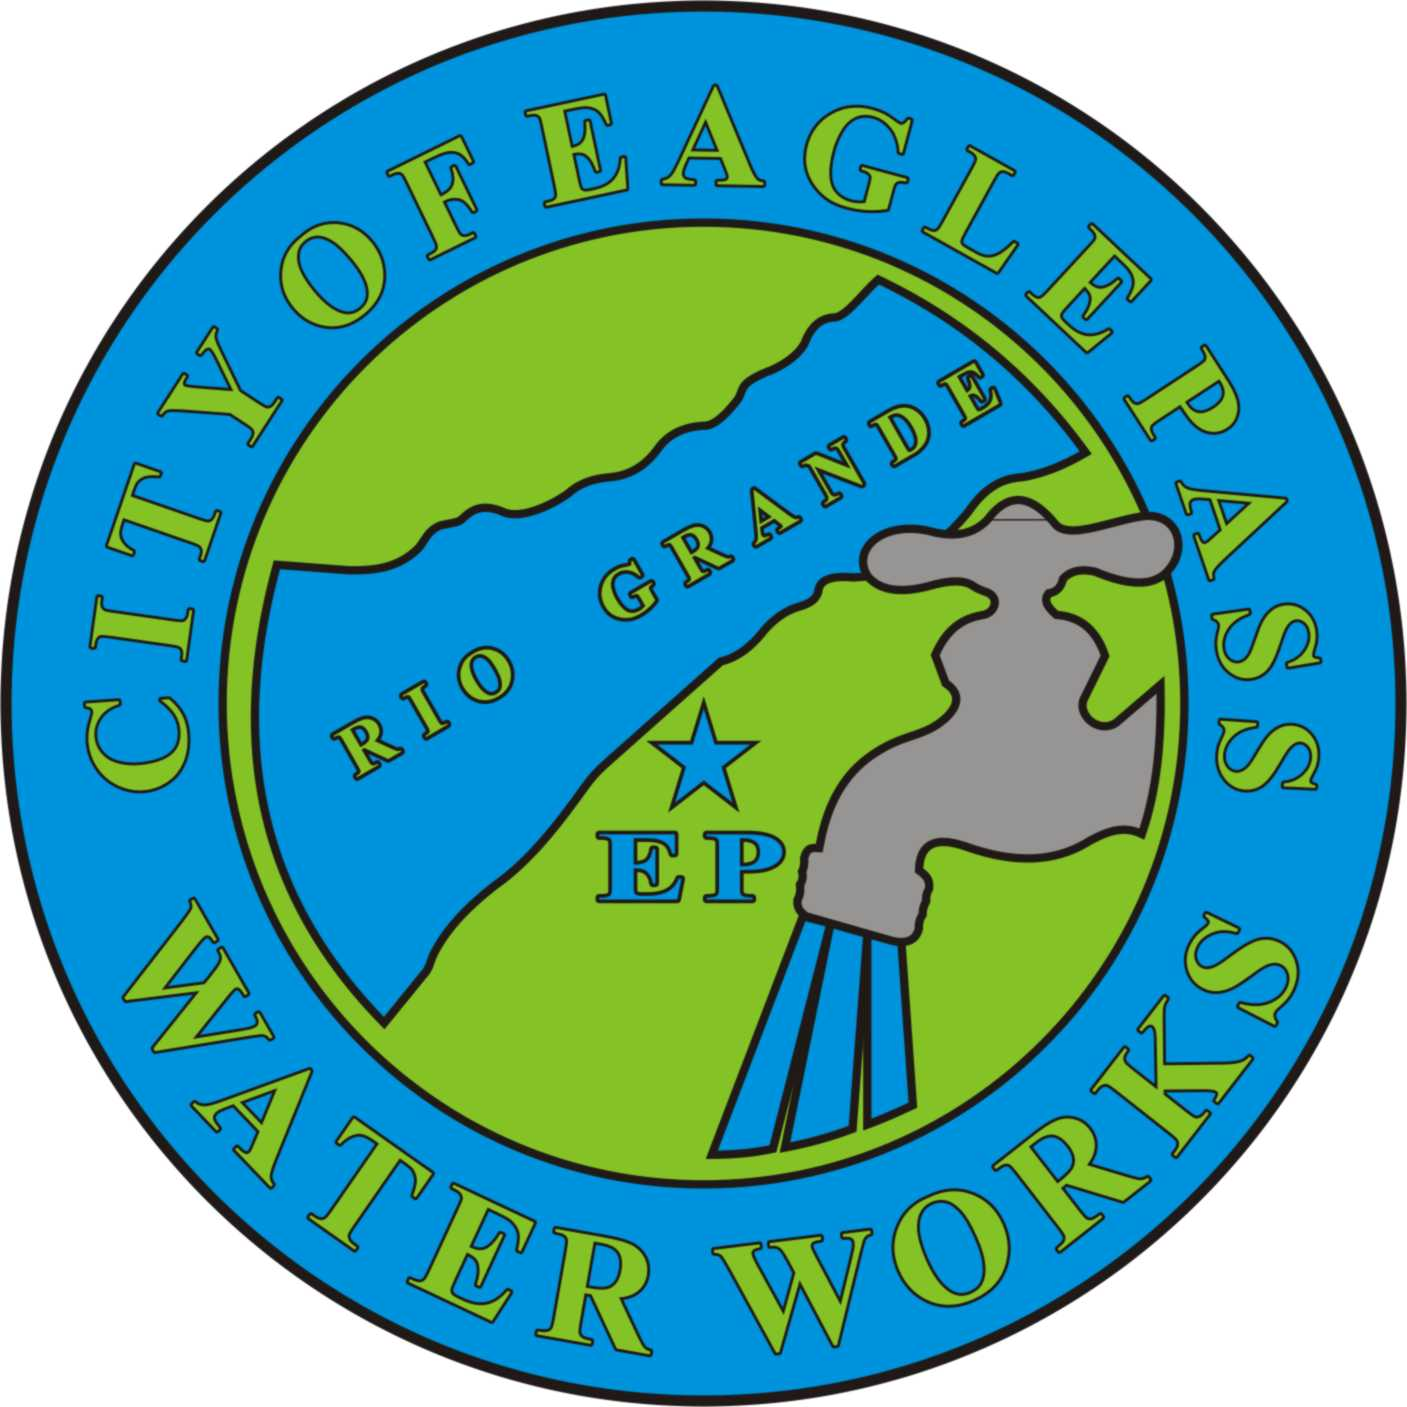 City of Eagle Pass Water Works System